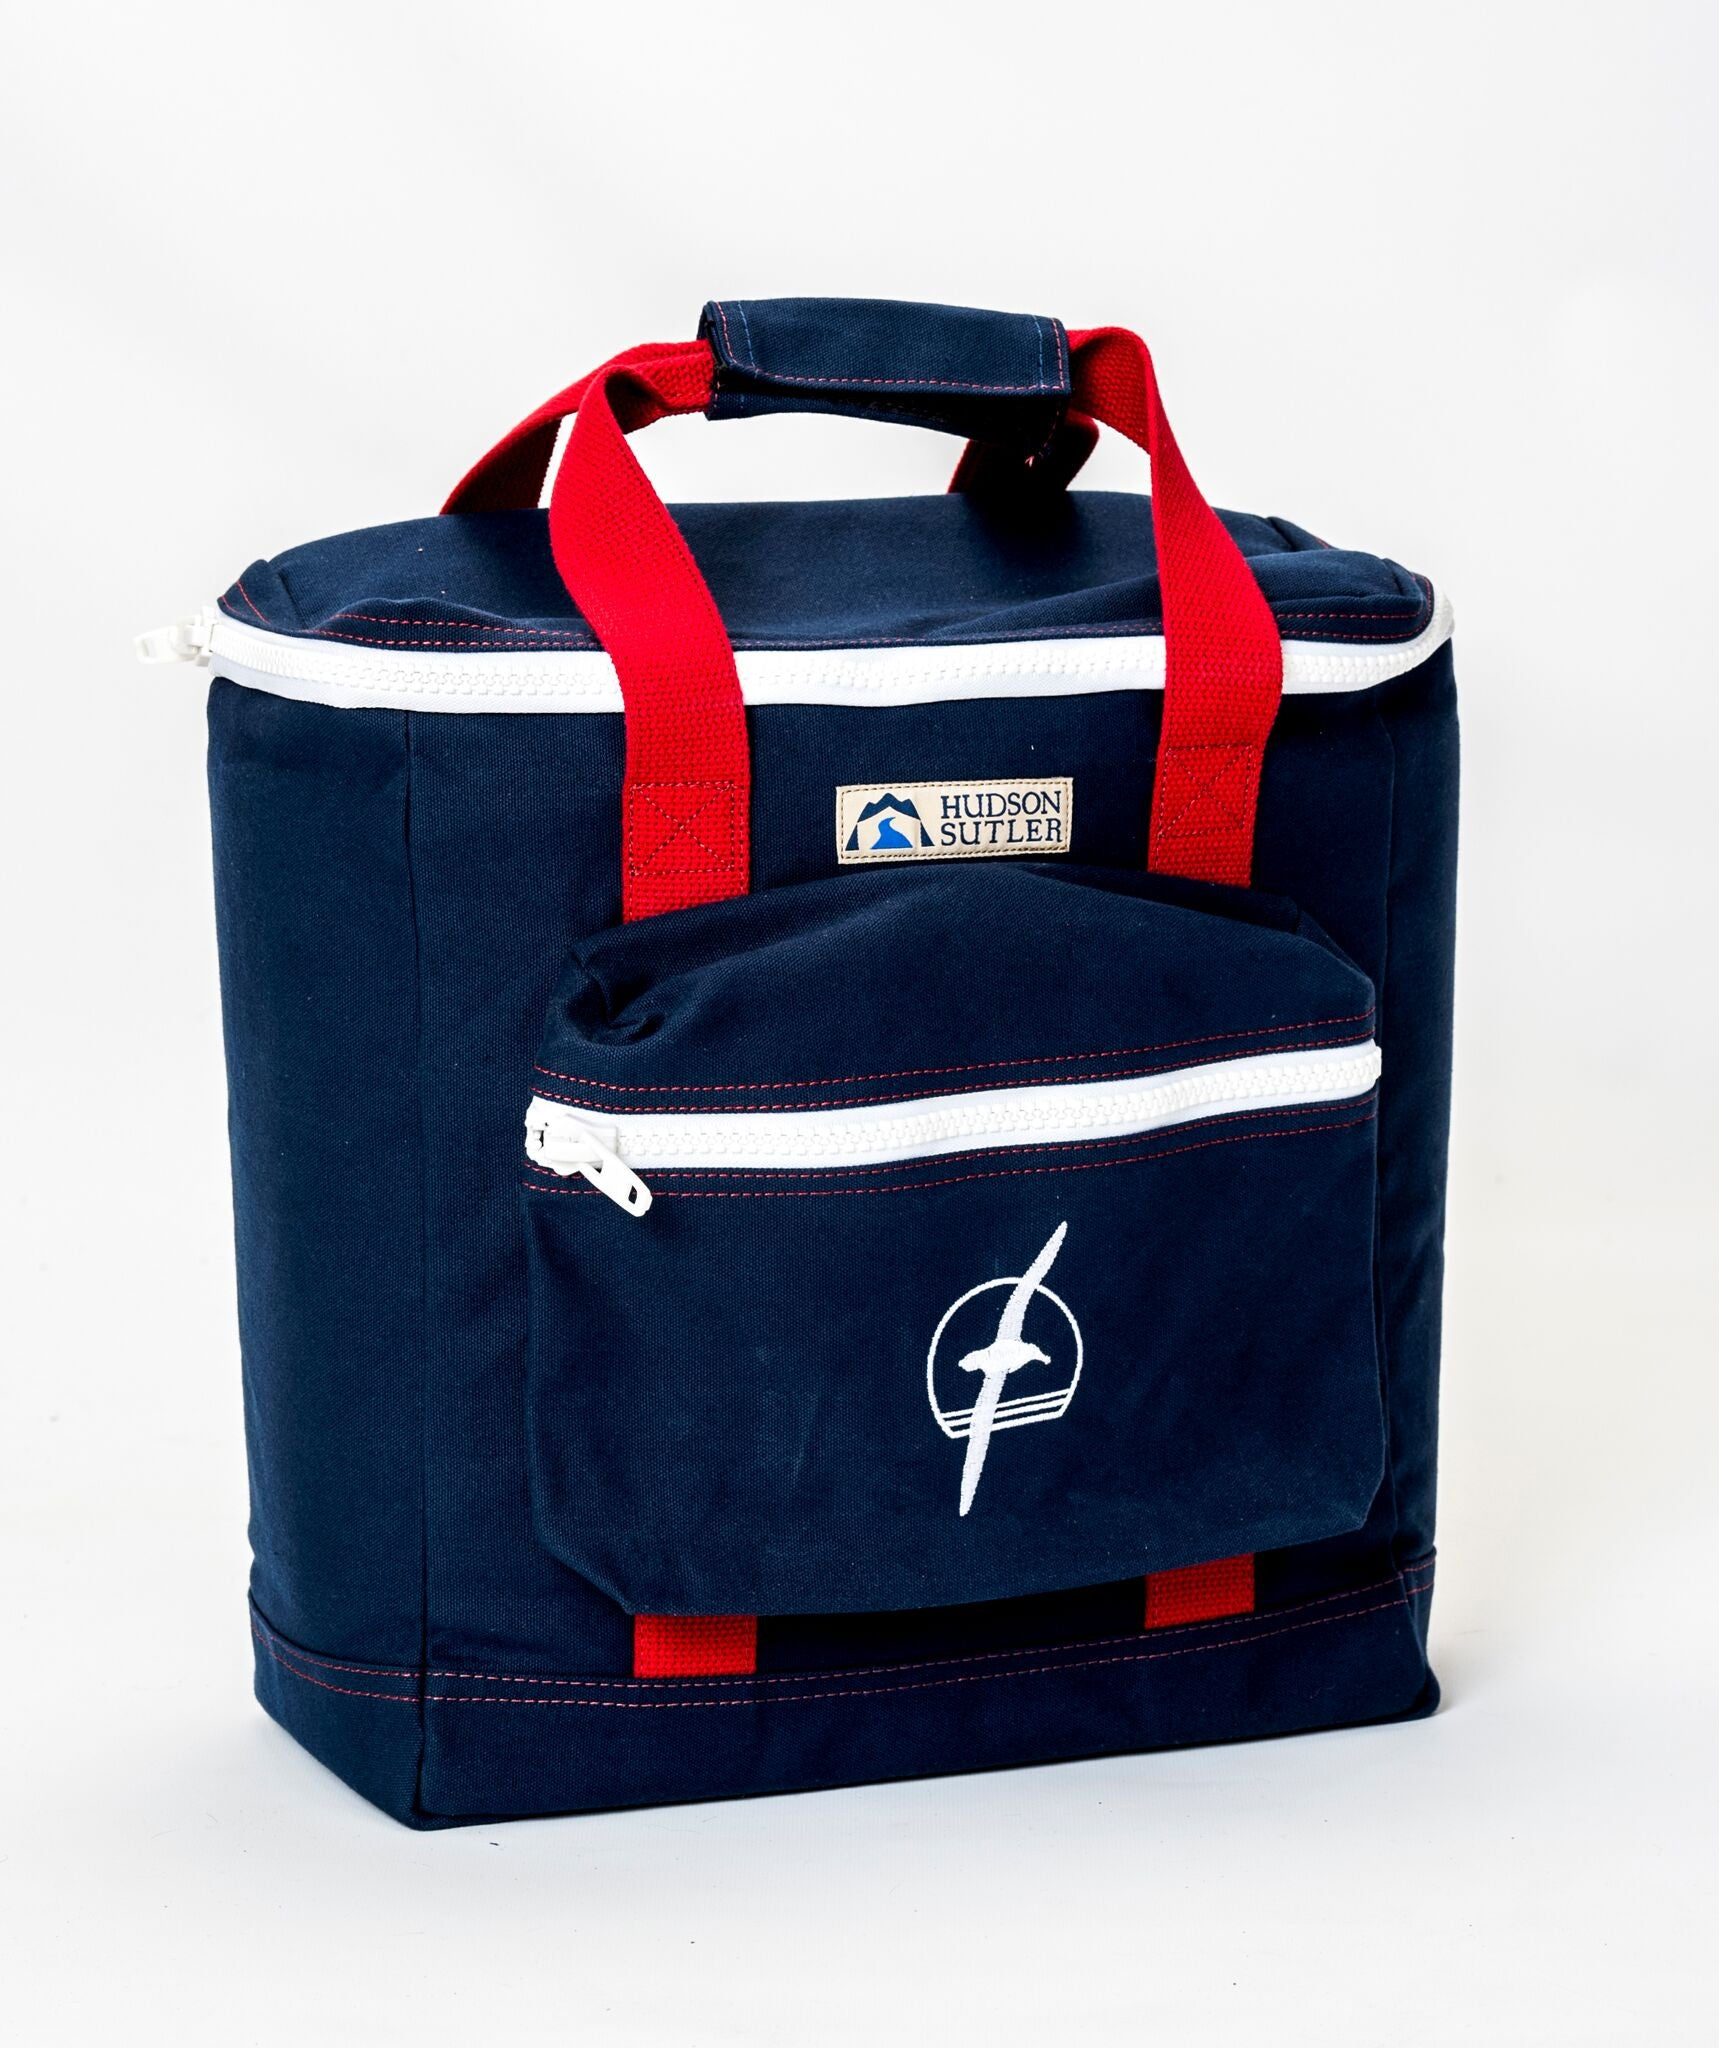 Hudson Sutler x Albatross - Cooler Bag